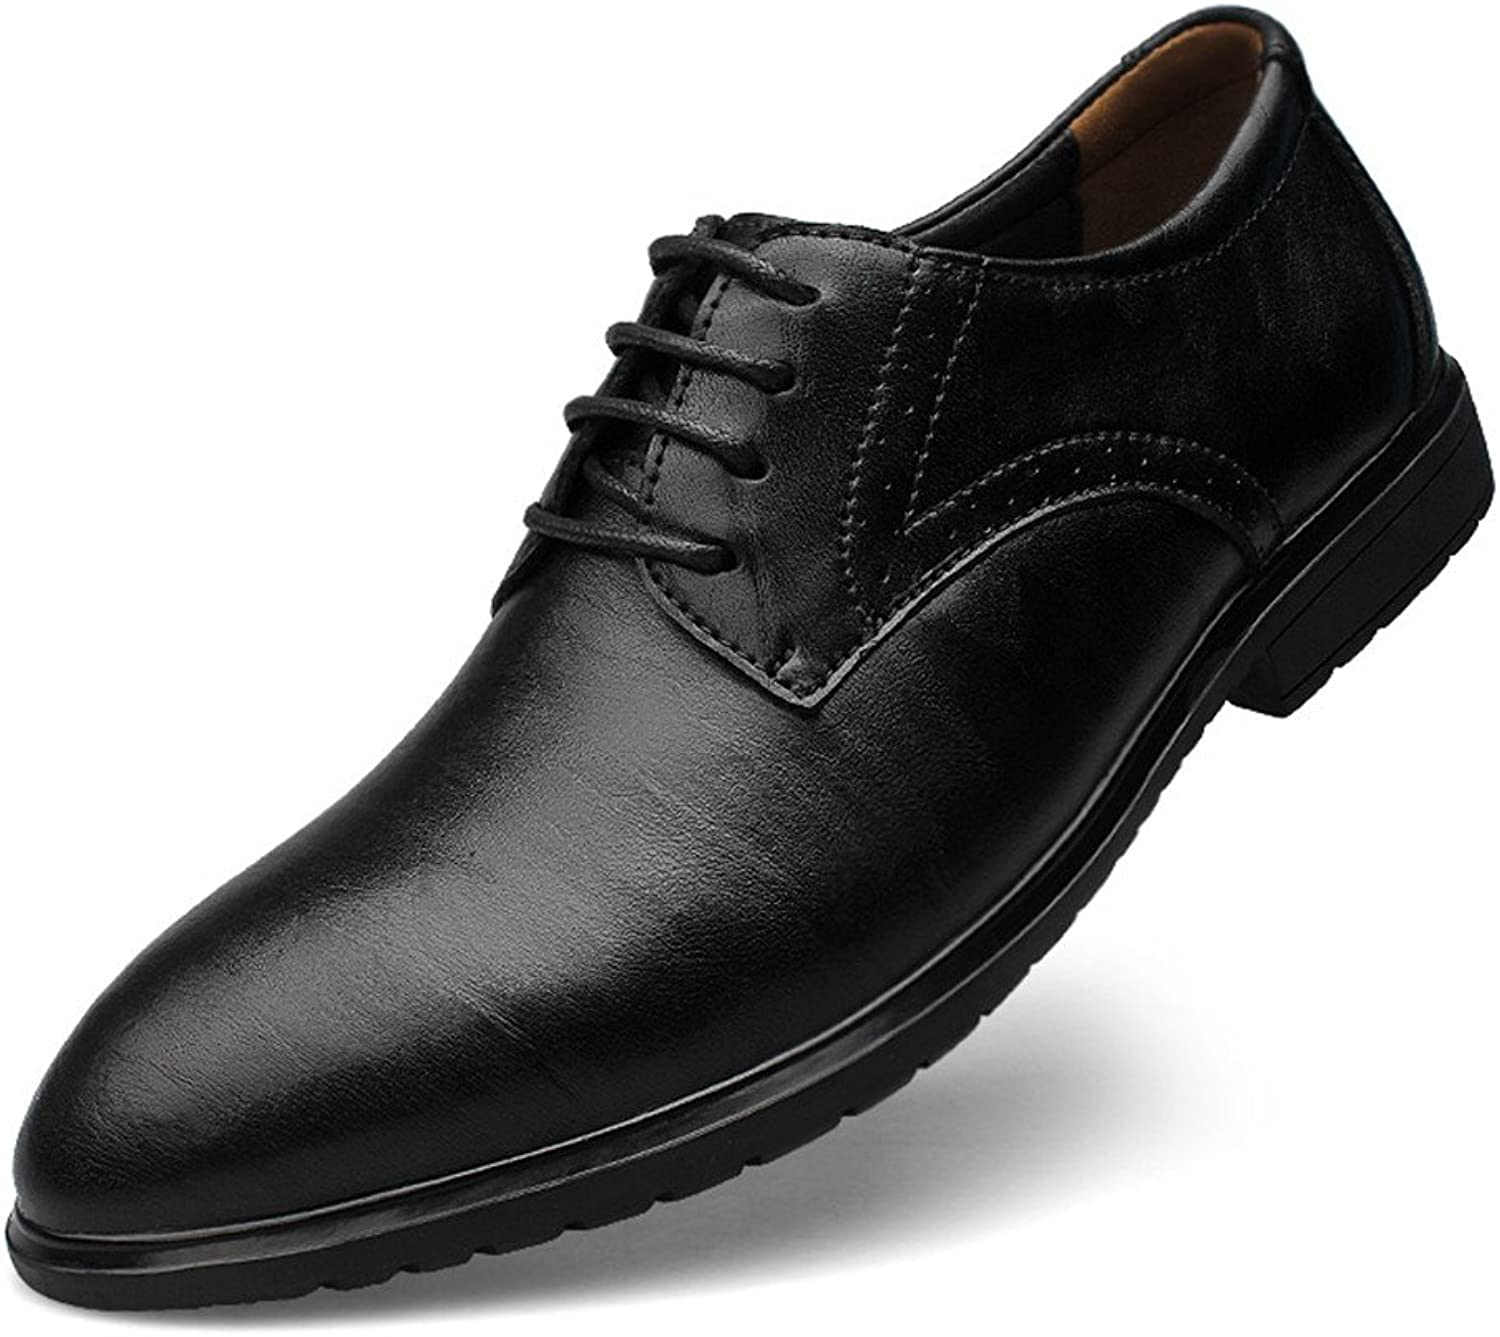 Ailishabroy Men's Fashion Leather Formal shoes Business Lace-up Dress Oxfords